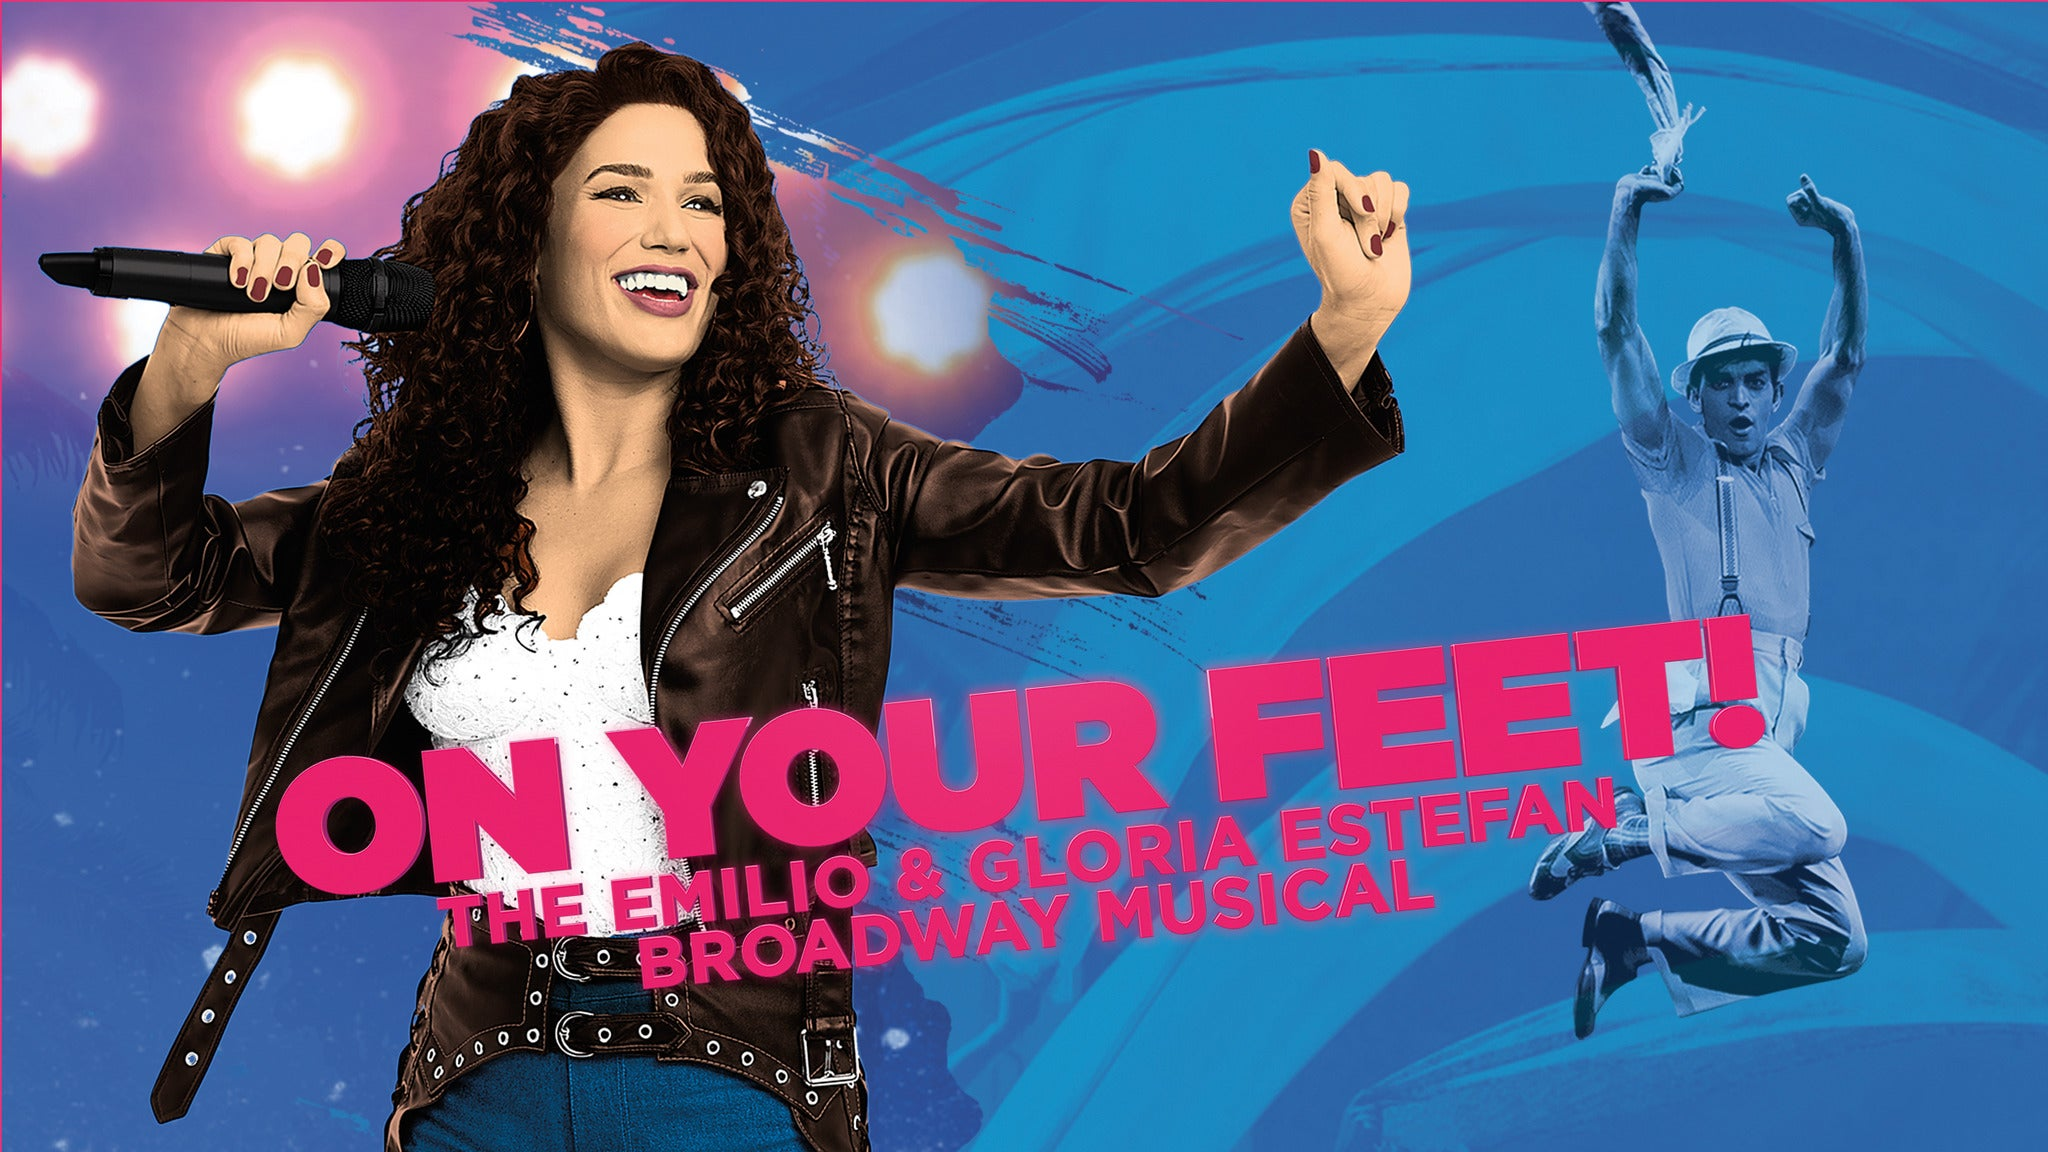 On Your Feet at Bushnell Theatre/ Mortensen Hall